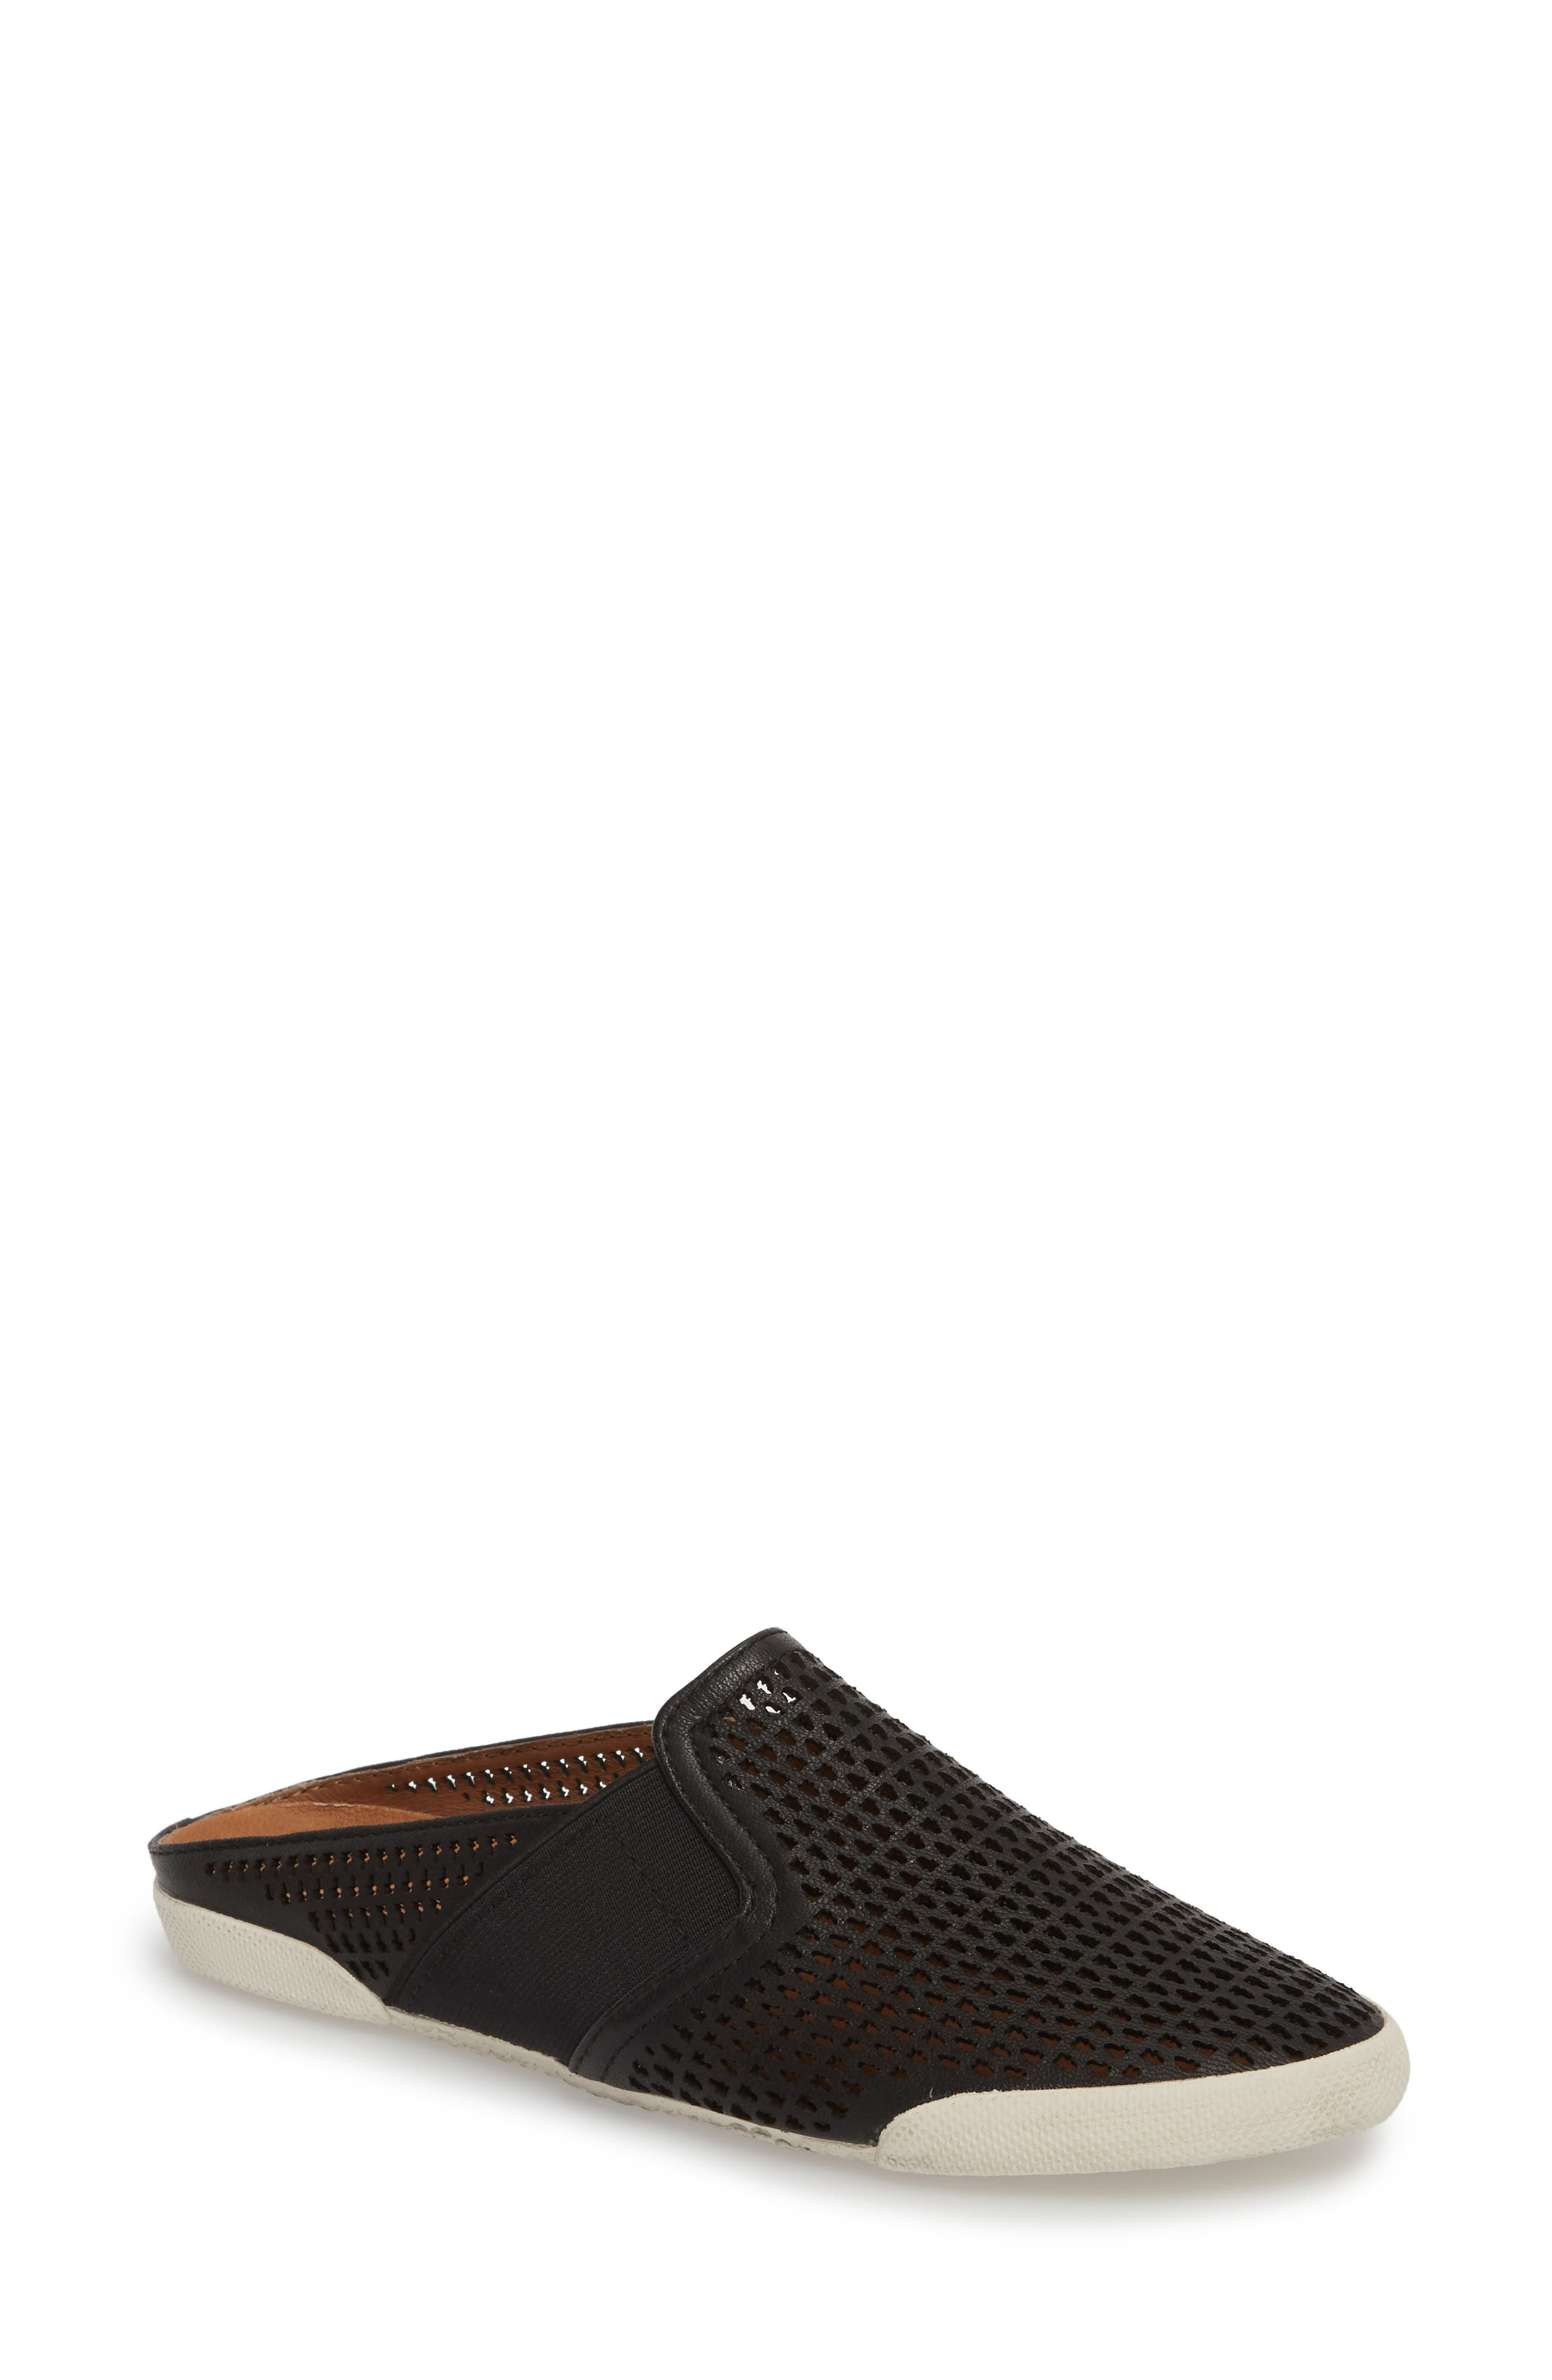 Melanie Perforated Mule,                         Main,                         color, BLACK LEATHER